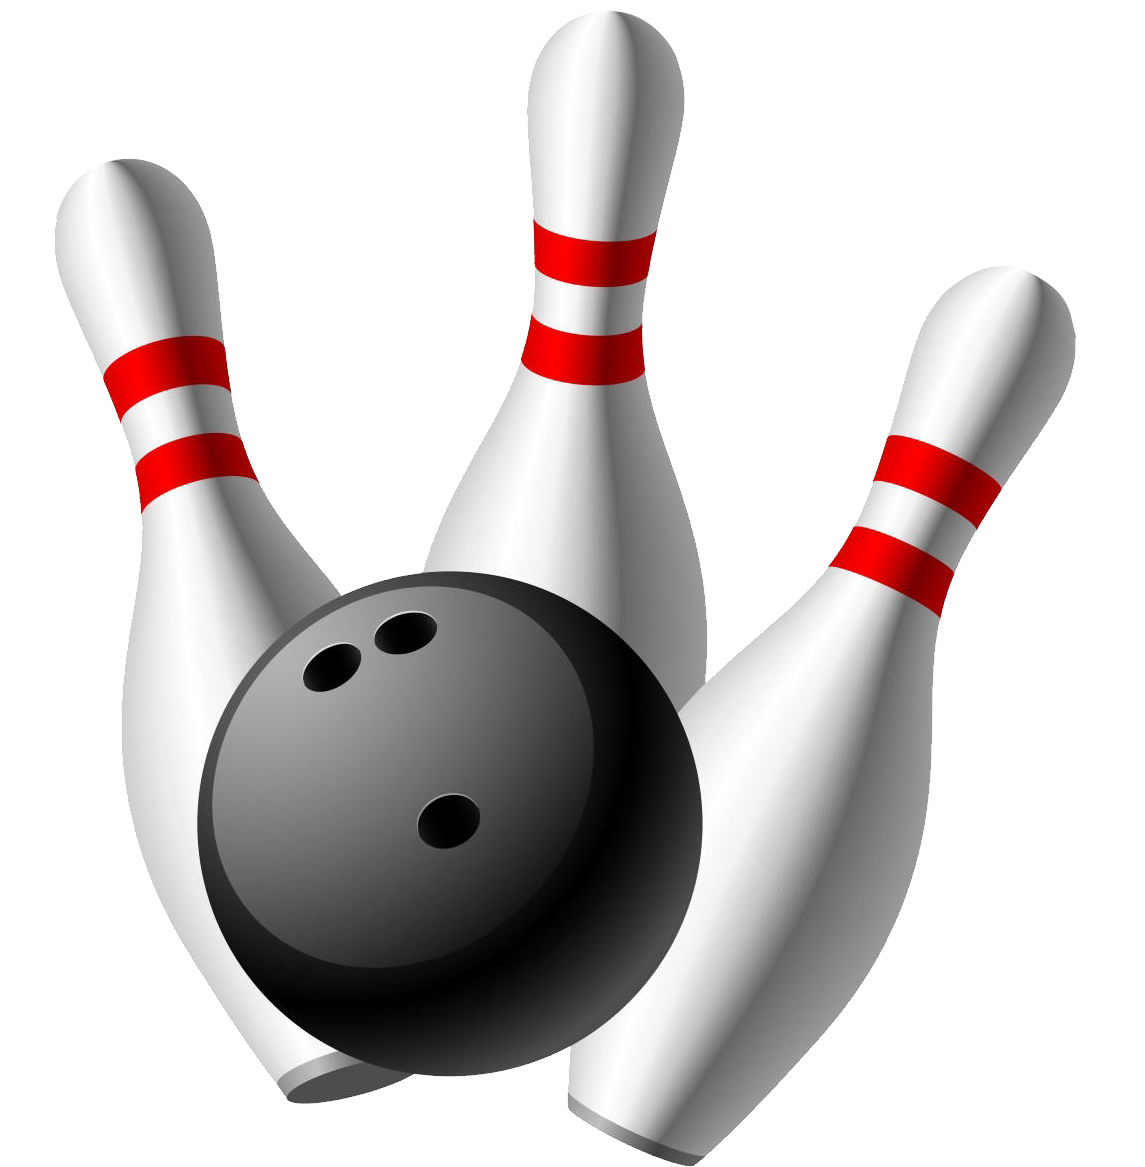 Bowling cross pins clipart picture royalty free library 28+ Collection of Bowling Clipart Transparent Background | High ... picture royalty free library